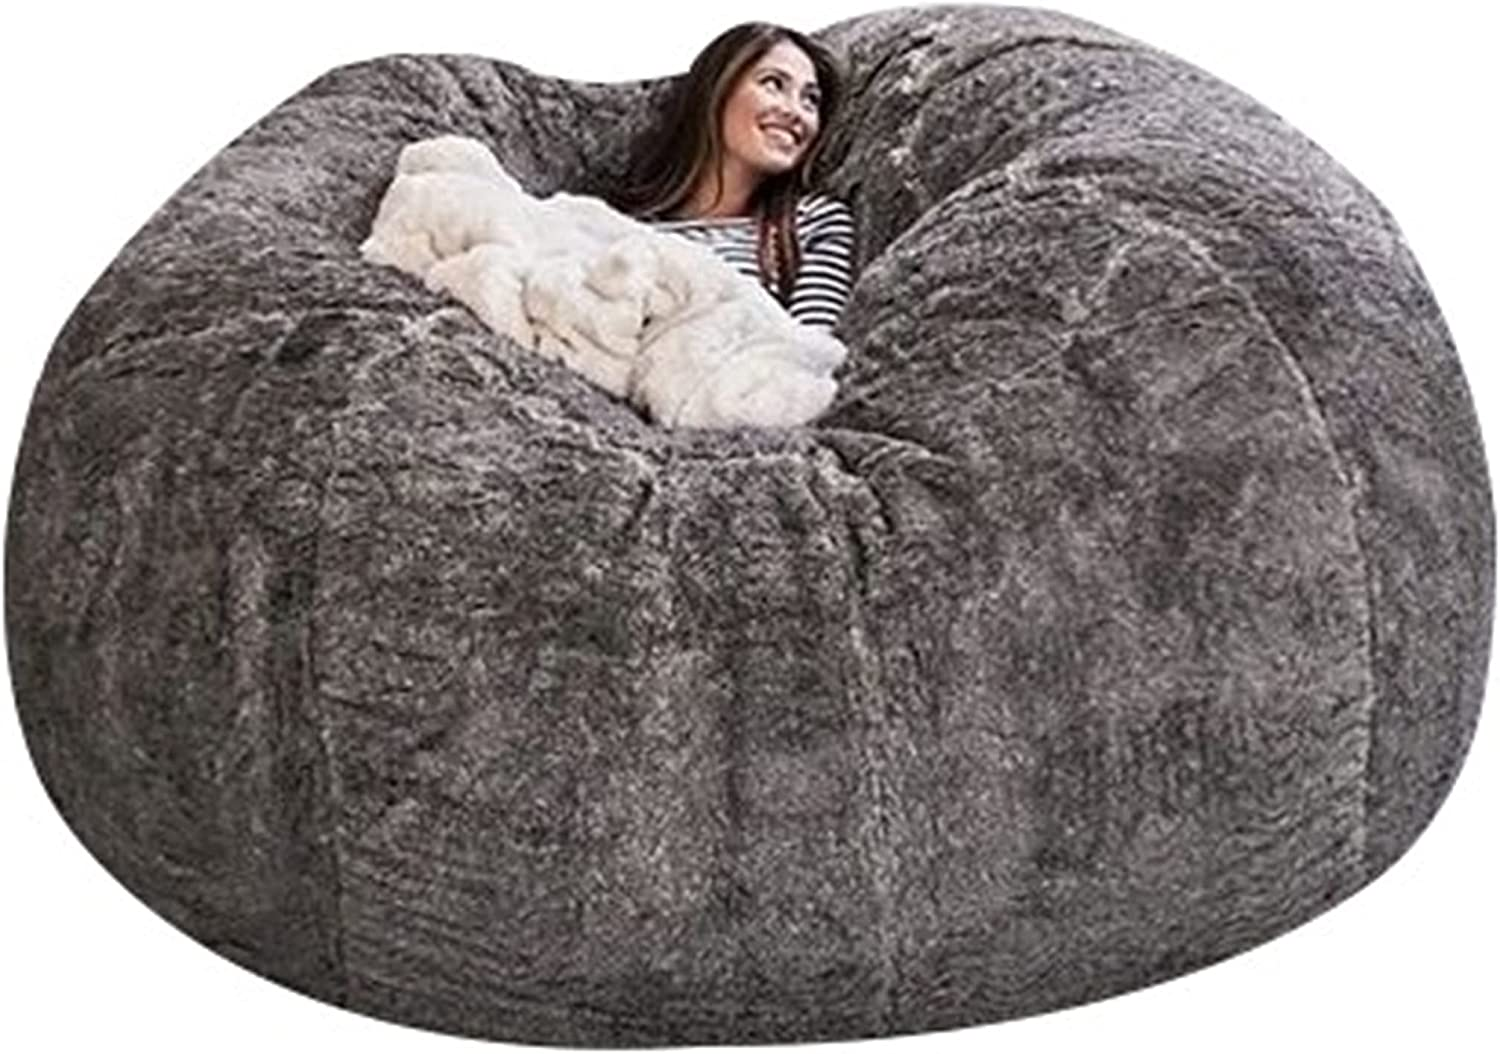 EKWQ 7ft Bean Bag Max 43% OFF Chair Cover No Sales results No. 1 Comfortable Be Durable Filler